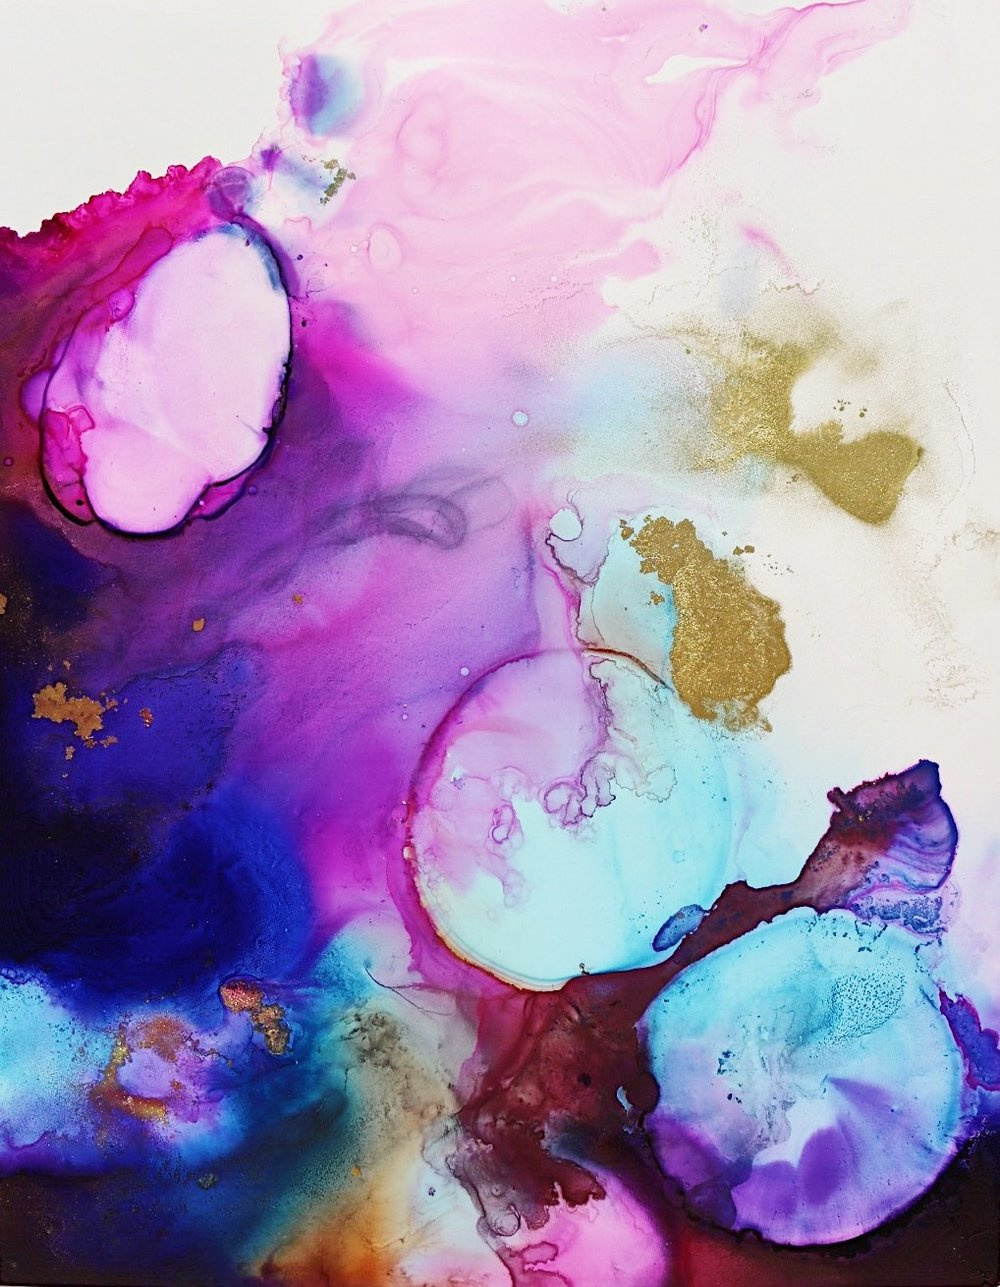 Cosmic Alcohol Ink art commission by jenna webb - original painting